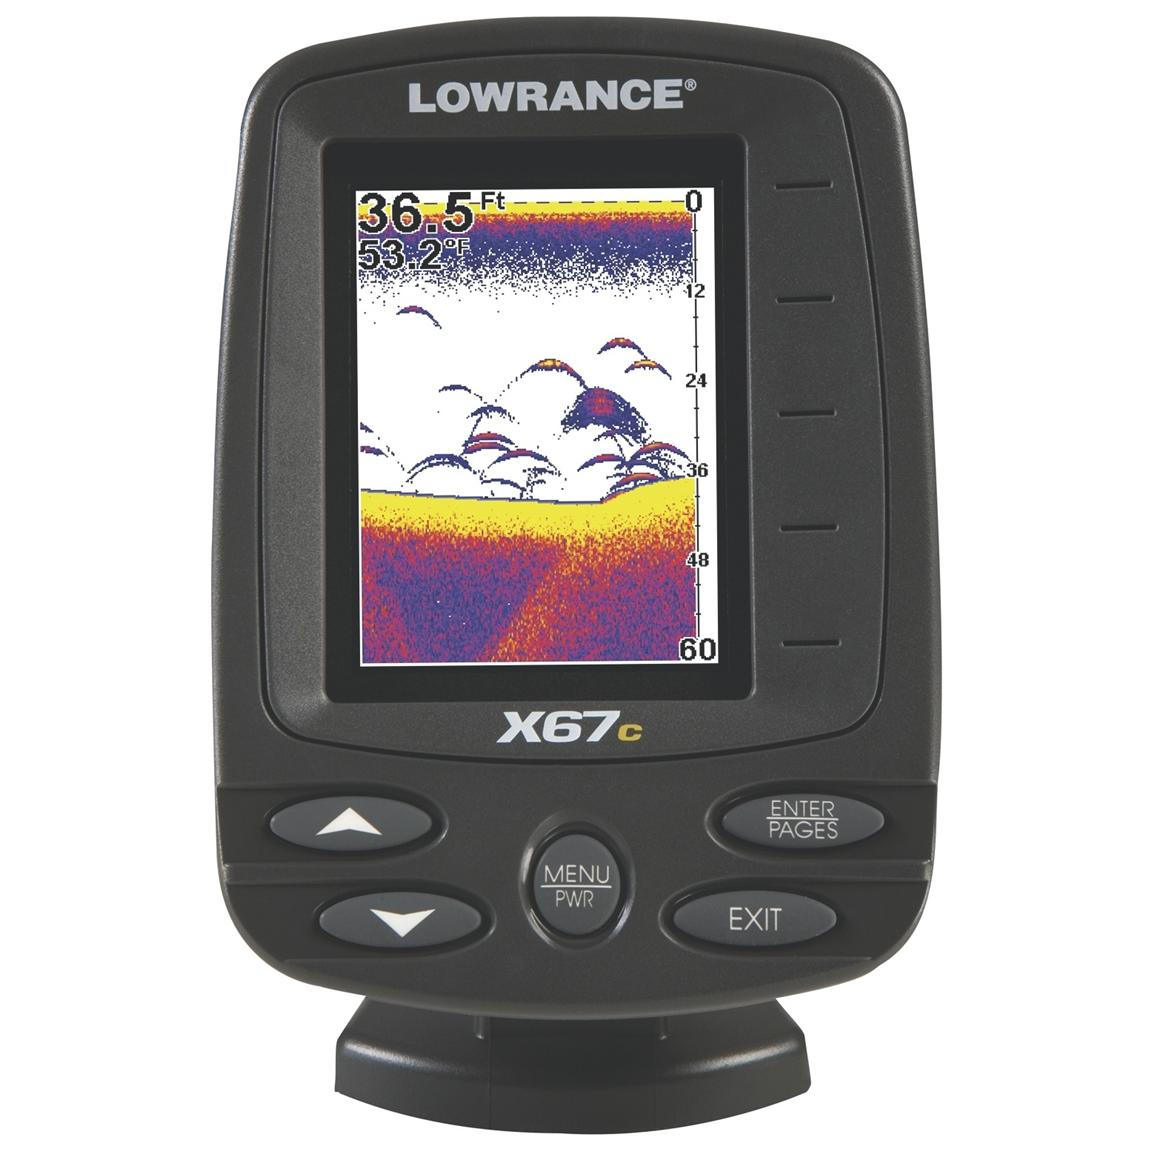 Lowrance x67c compact fishfinder 200808 ice fishing for Ice fishing electronics